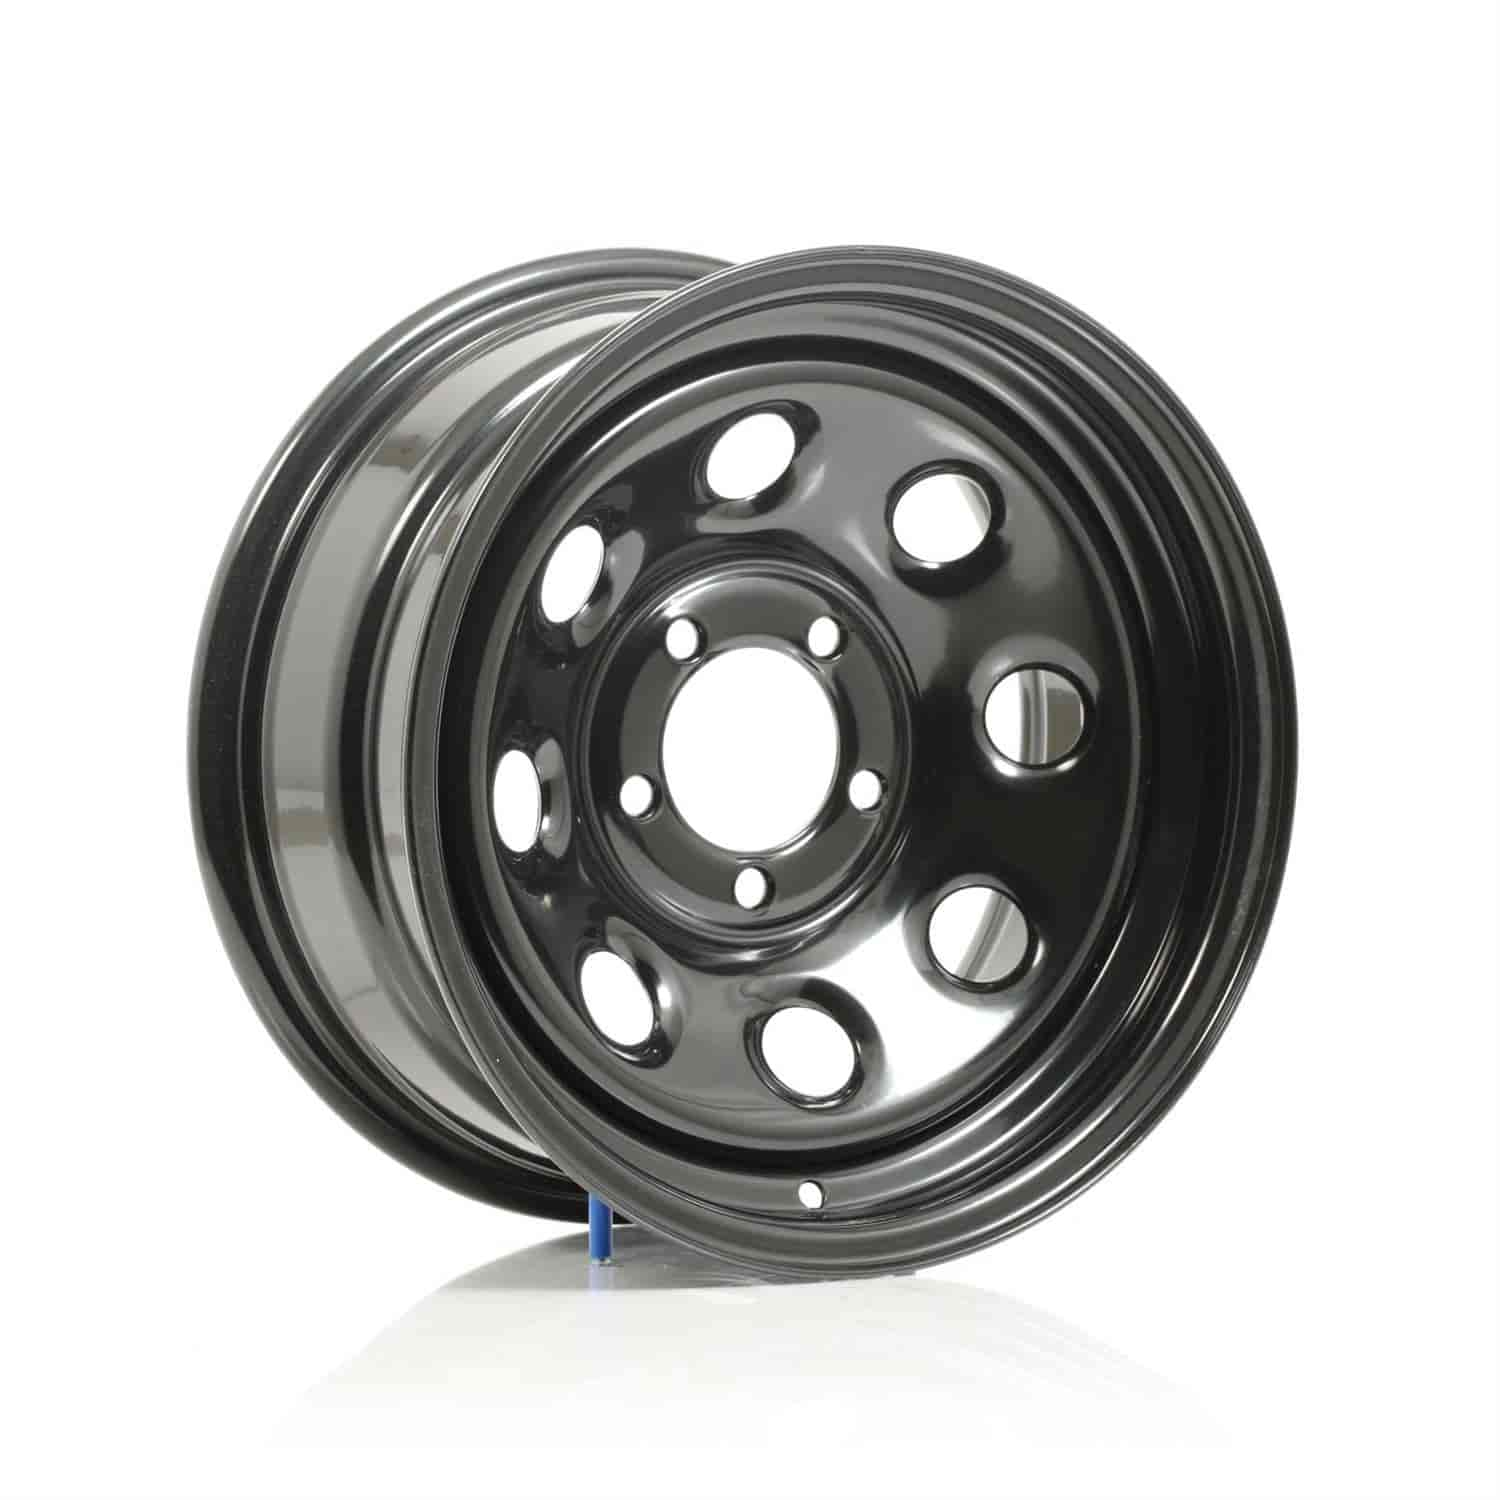 Cragar 3977764 - Cragar Black Soft 8 Wheels